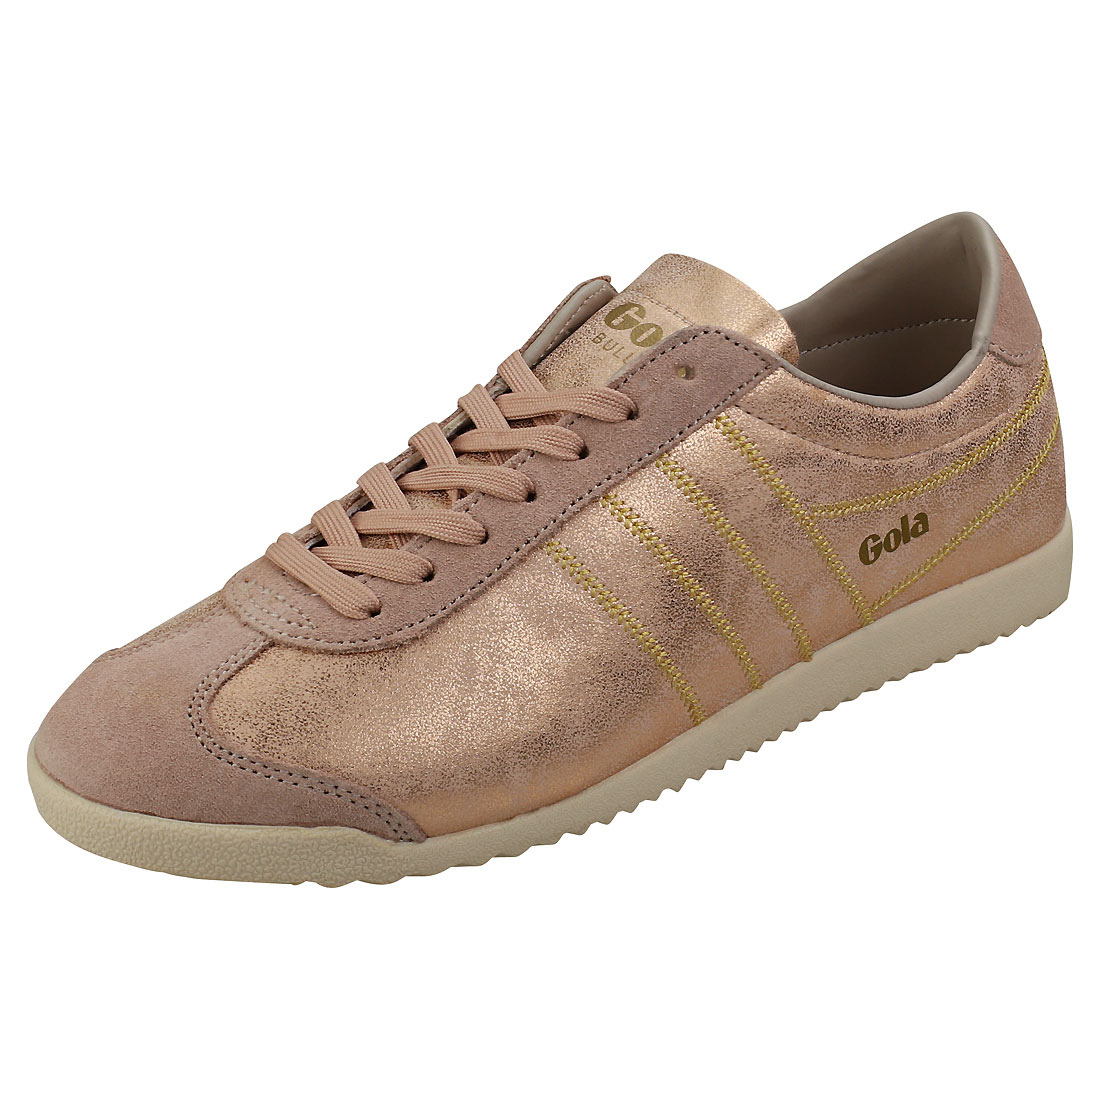 e607d6b13a5 Gola Bullet Lustre Shimmer Womens Blush Pink Suede   Synthetic Casual  Trainers